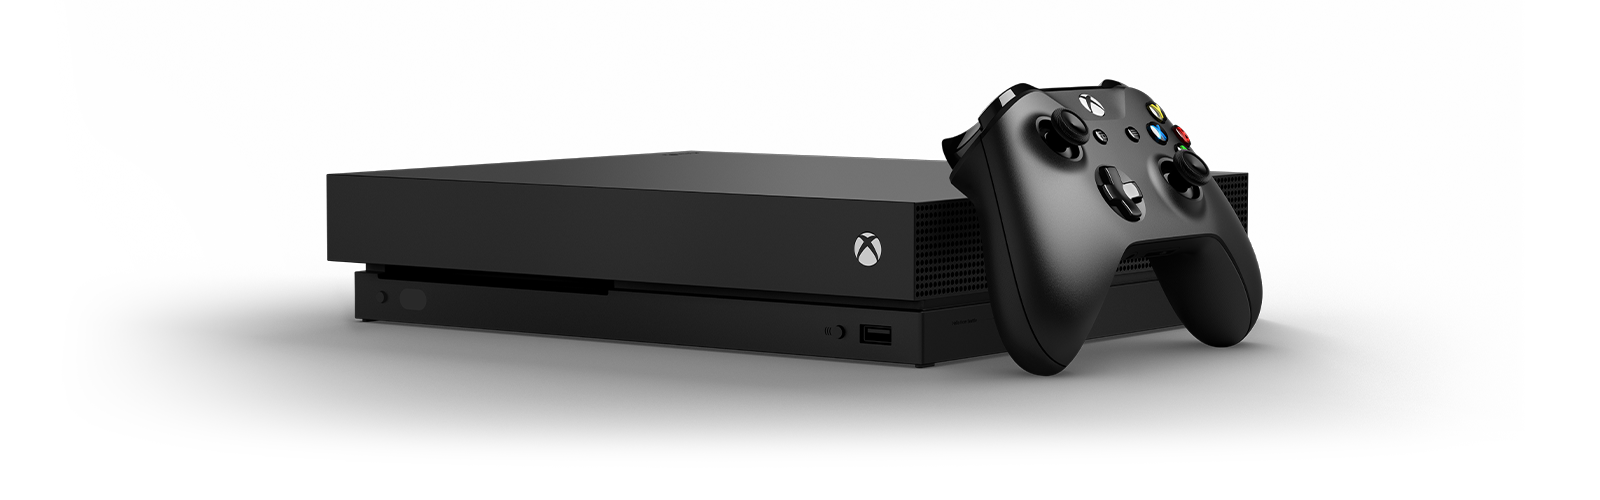 Front view of an Xbox One X